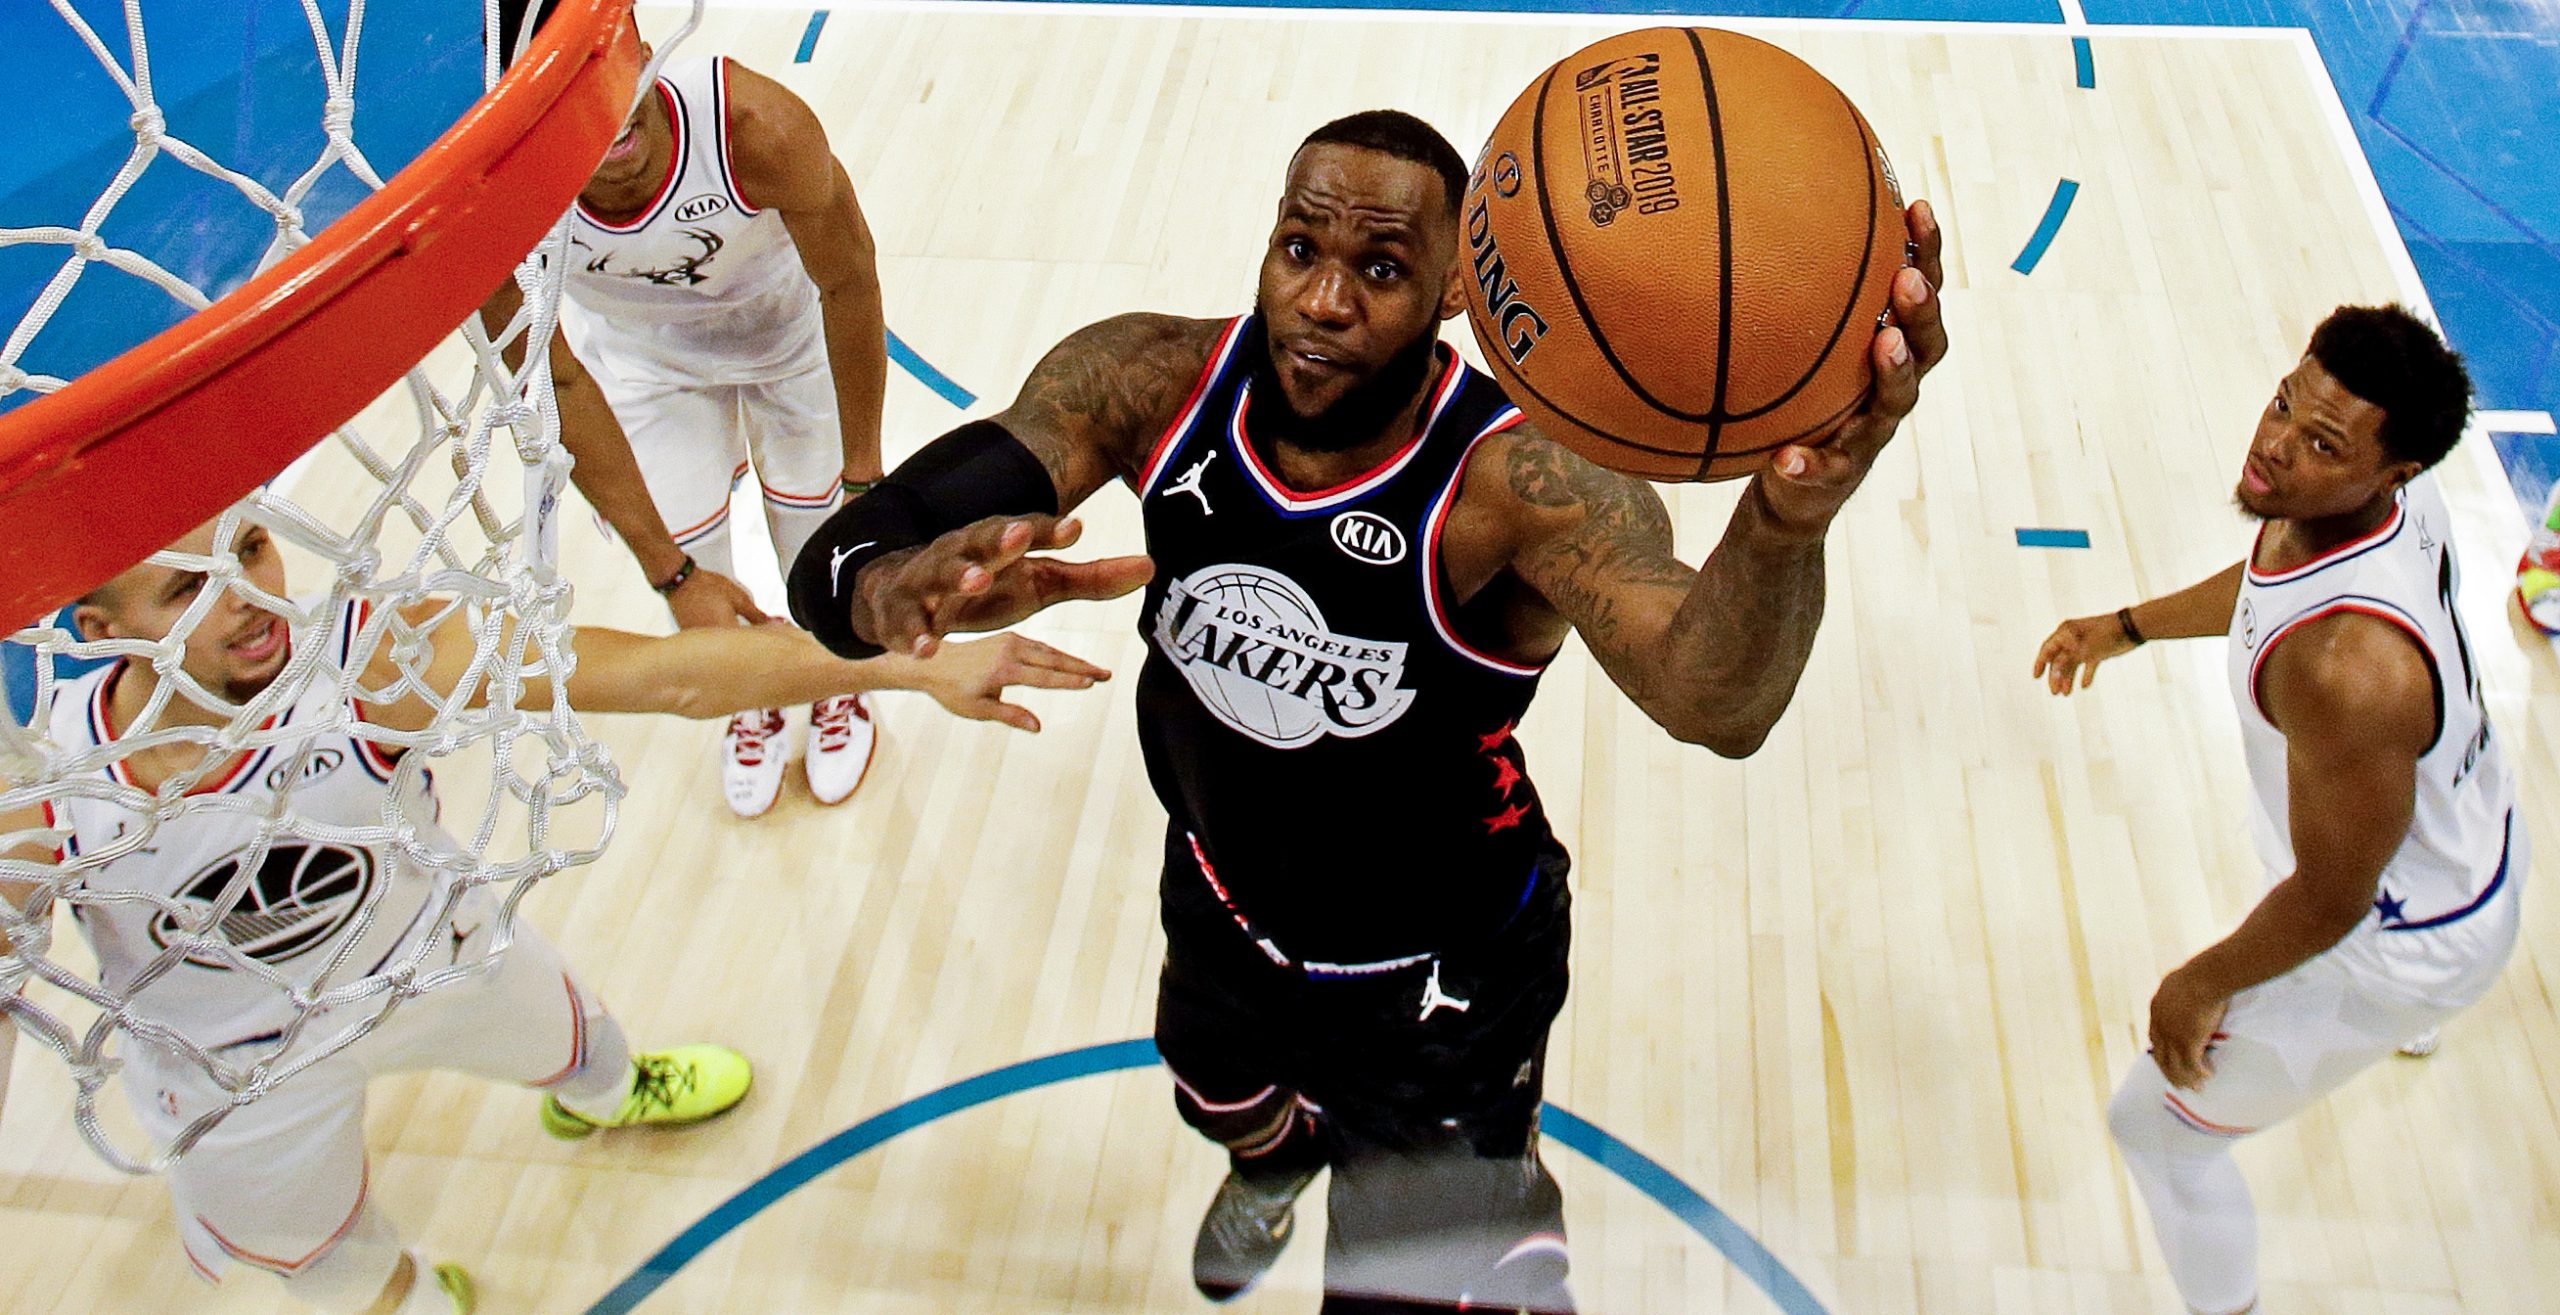 NBA-ALL-STAR-GAME-2020-Lebron-James-betFIRST